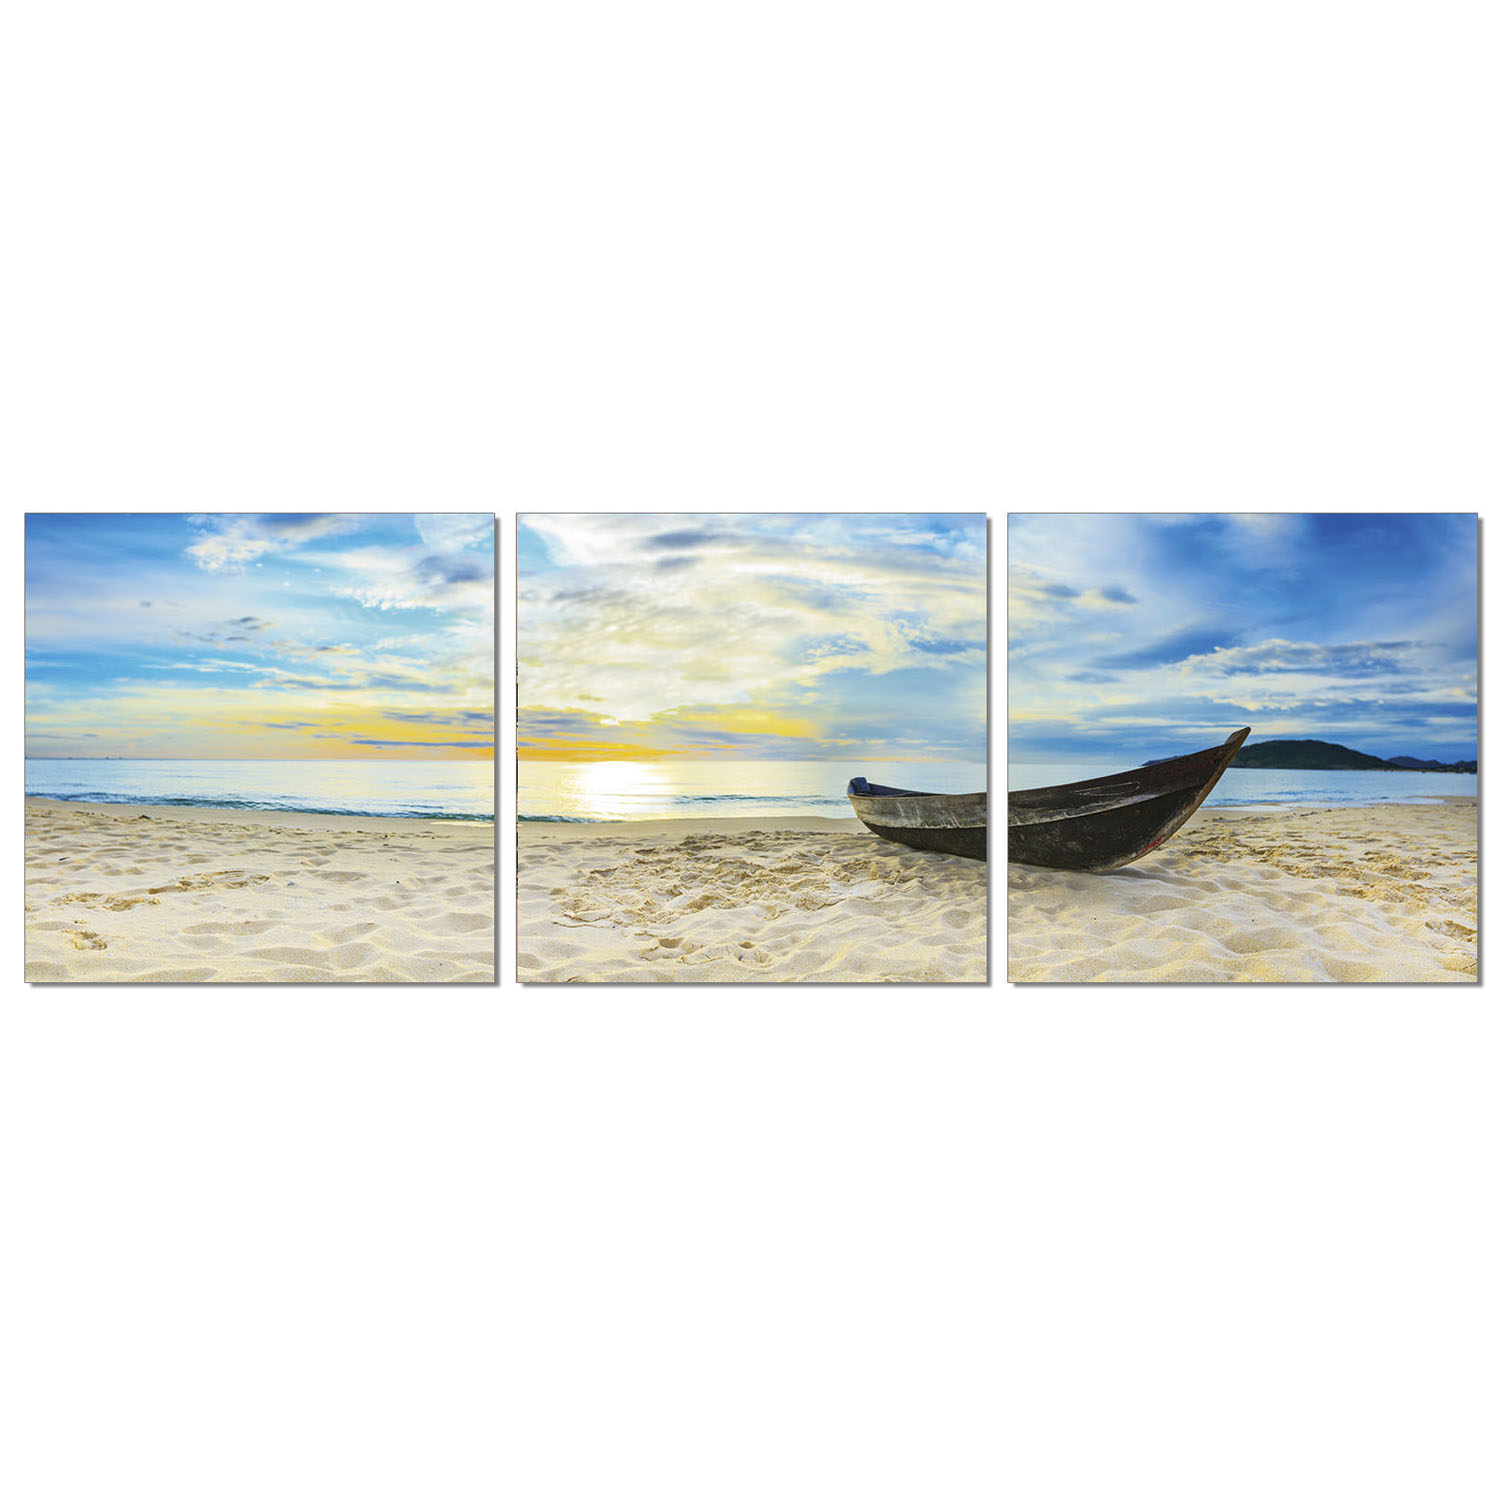 Furinno SENIC Fishing at Sunset 3-Panel Canvas on Wood Frame, 60 x 20 Inches - image 1 of 1